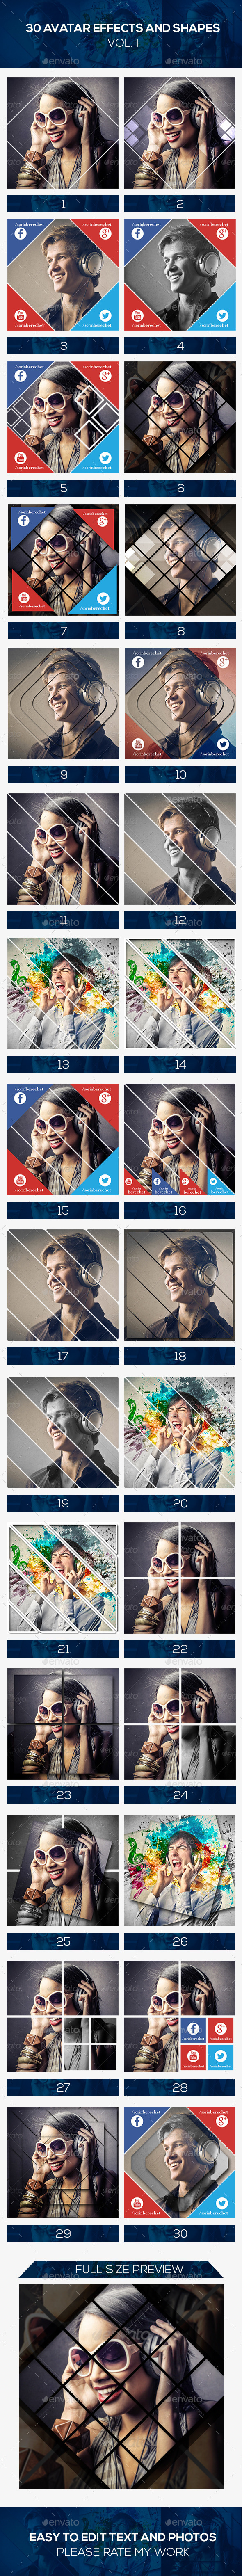 GraphicRiver 30 Avatar Effects 8933493